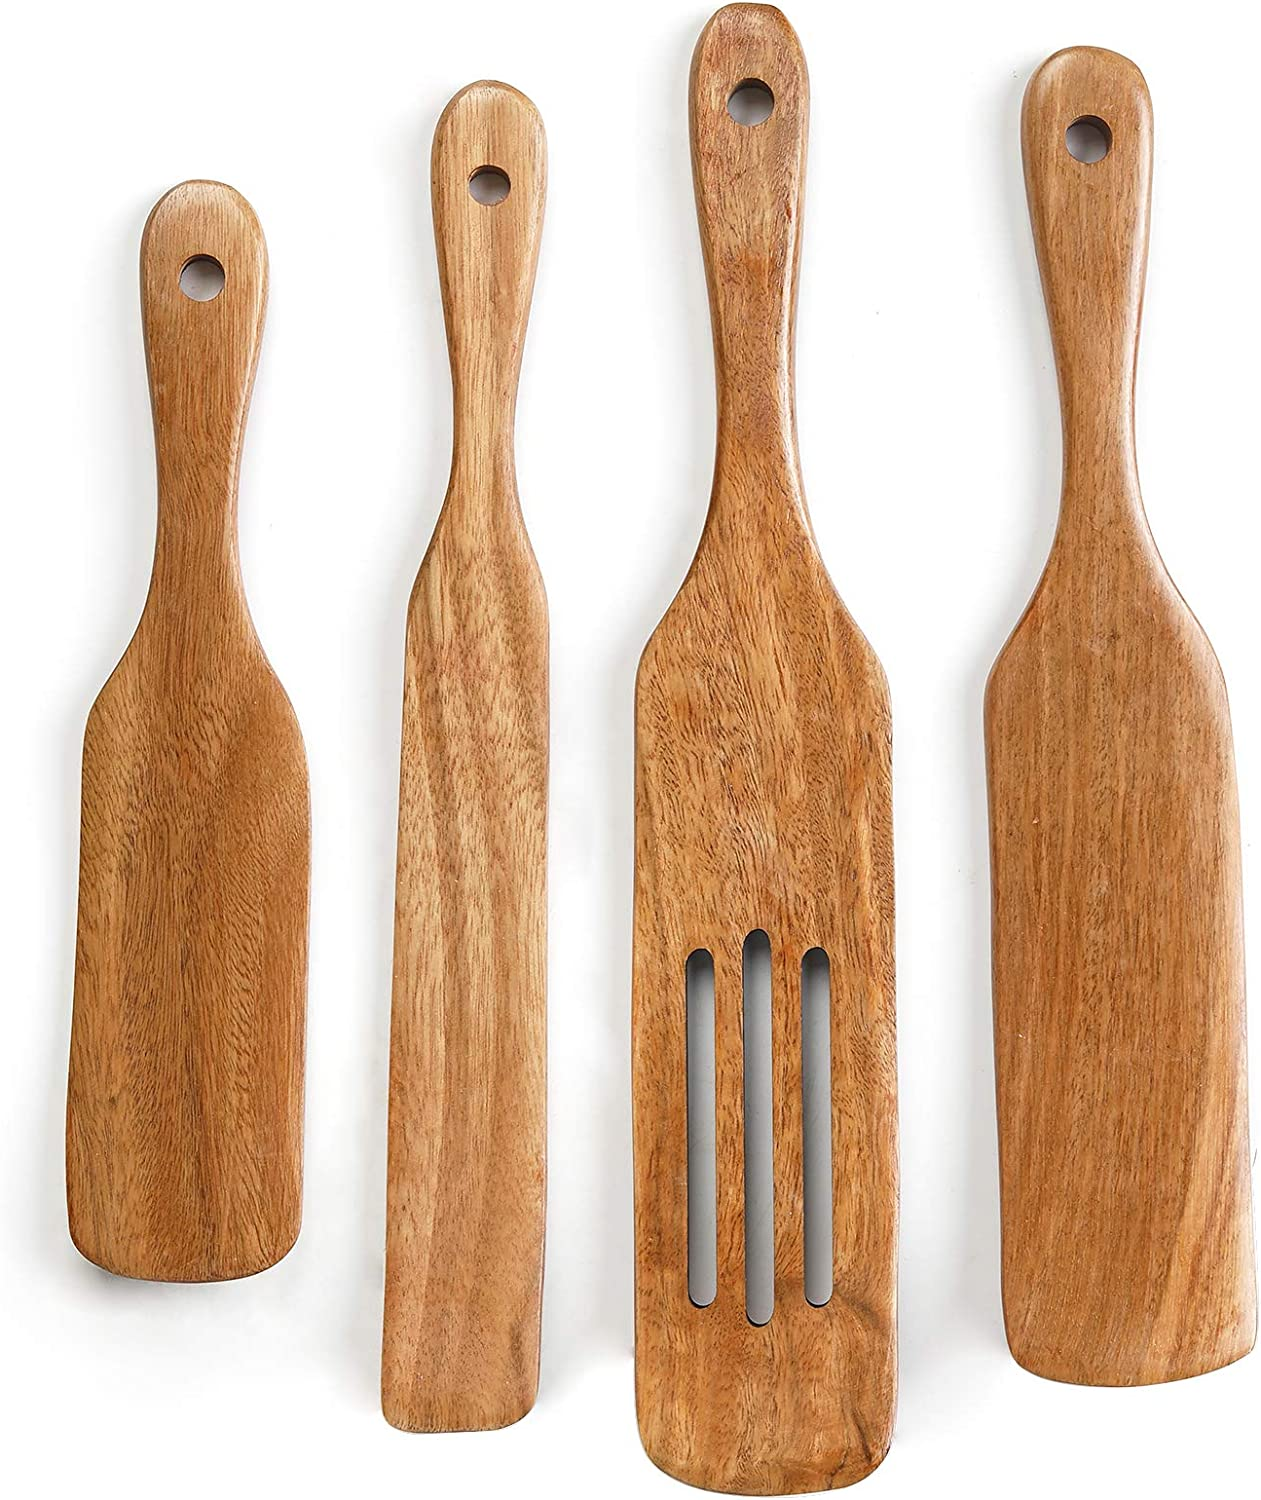 Spurtles Kitchen Tools, Acacia Wood Spurtles Kitchen Set,Wood Cooking Utensil, 100% Healthy Hard and Durable Wood Kitchen Utensils For Salad Stir, Cake Make and Pan-Fried Steak